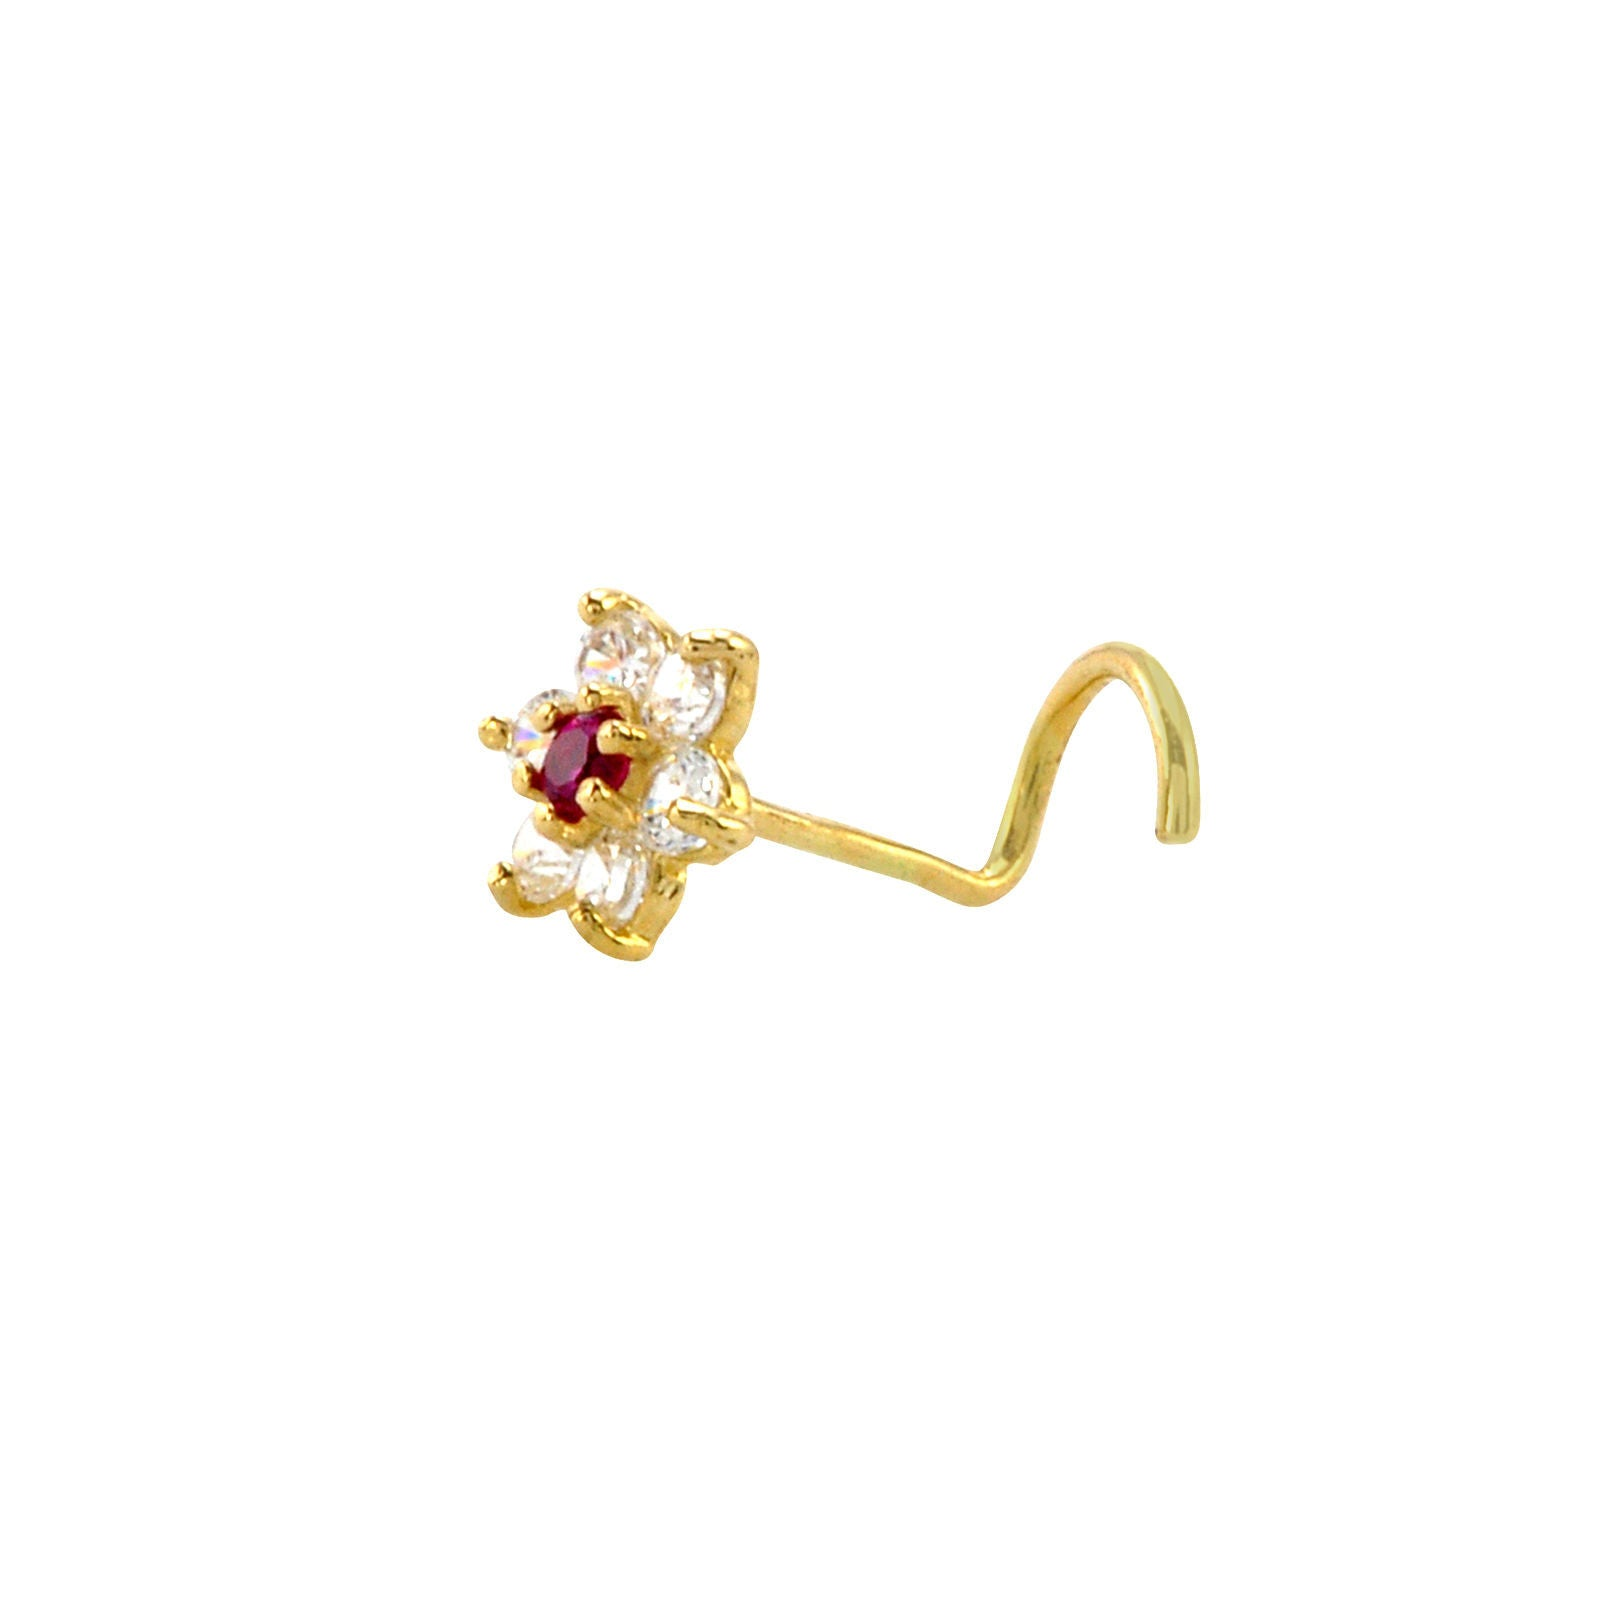 Flower Nose Stud 22g 14k Yellow Gold 5mm Red And White